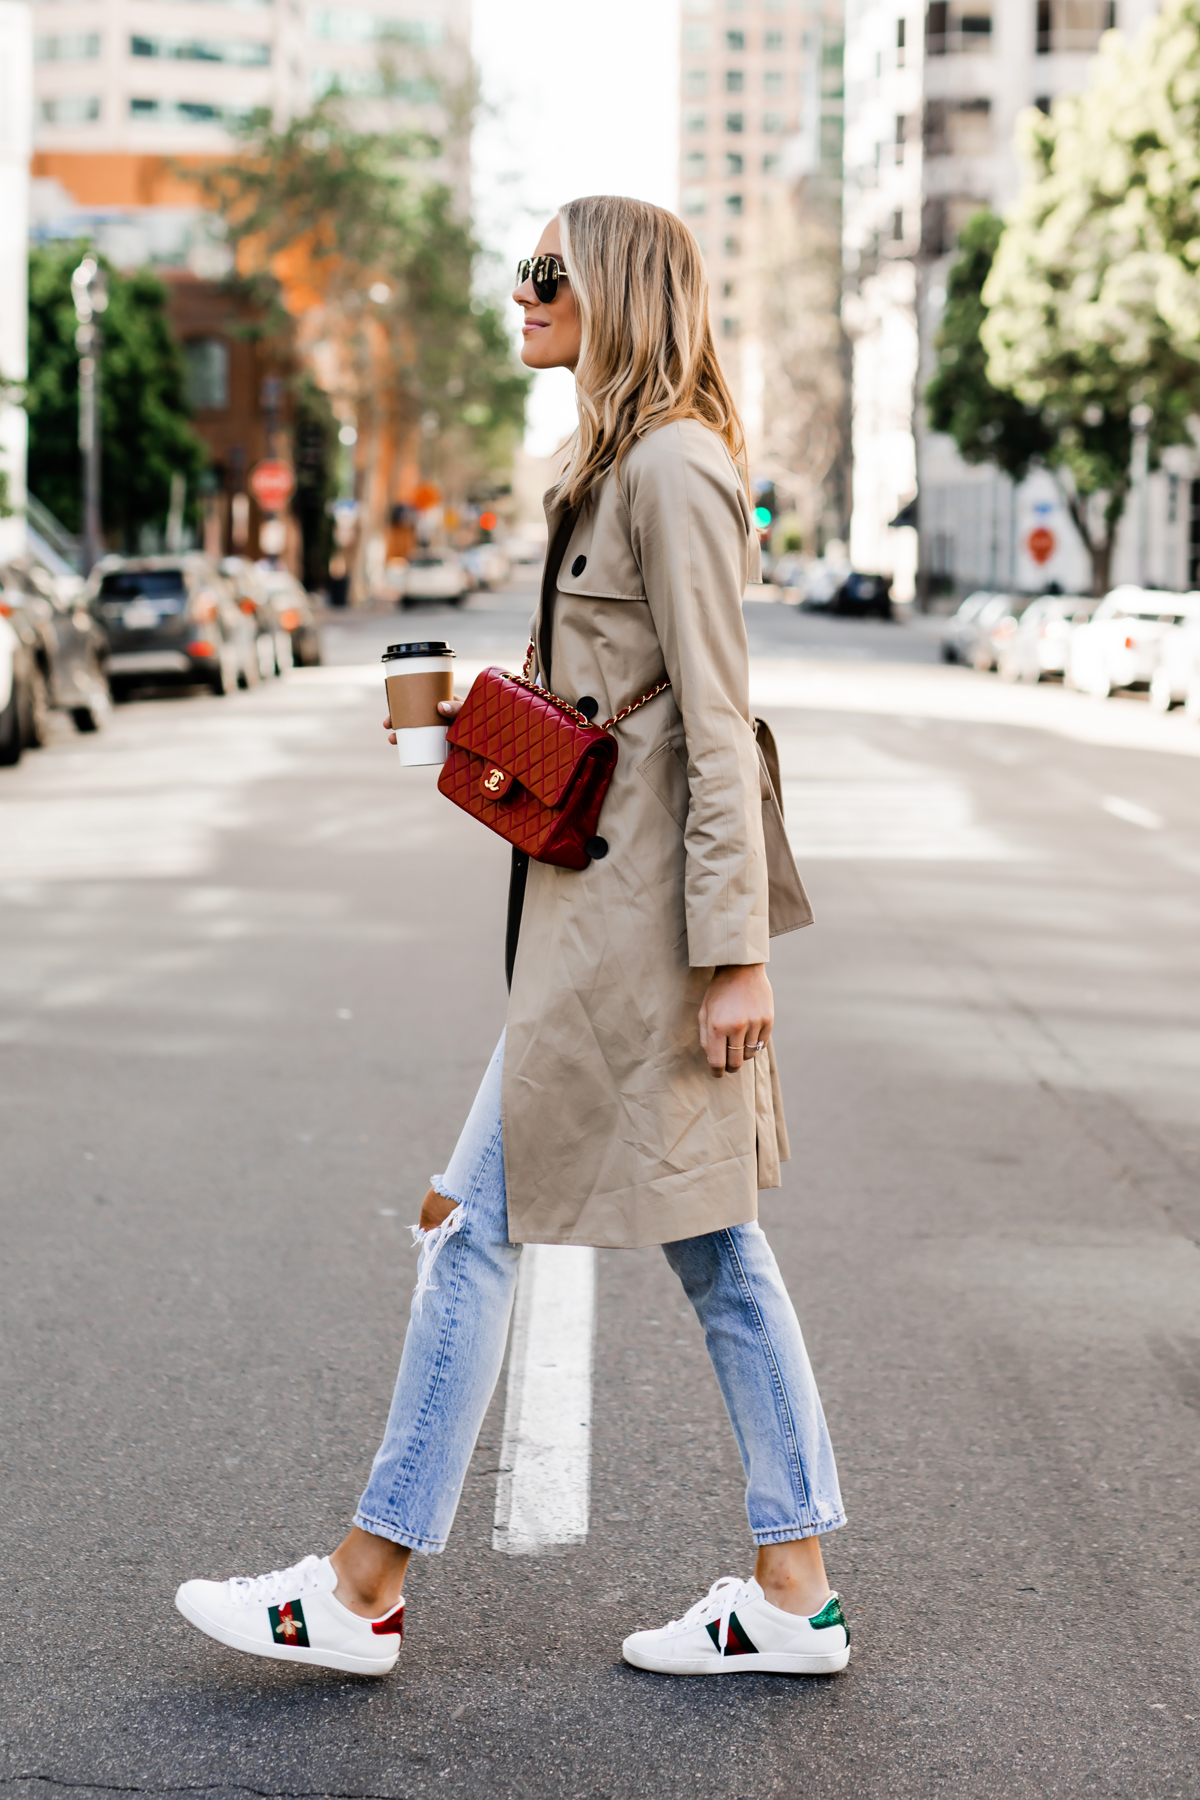 Fashion Jackson Wearing Everlane Trench Coat Ripped Jeans Gucci Ace Embroidered Sneakers Red Chanel Handbag Fashion Jackson San Diego Fashion Blogger Street Style